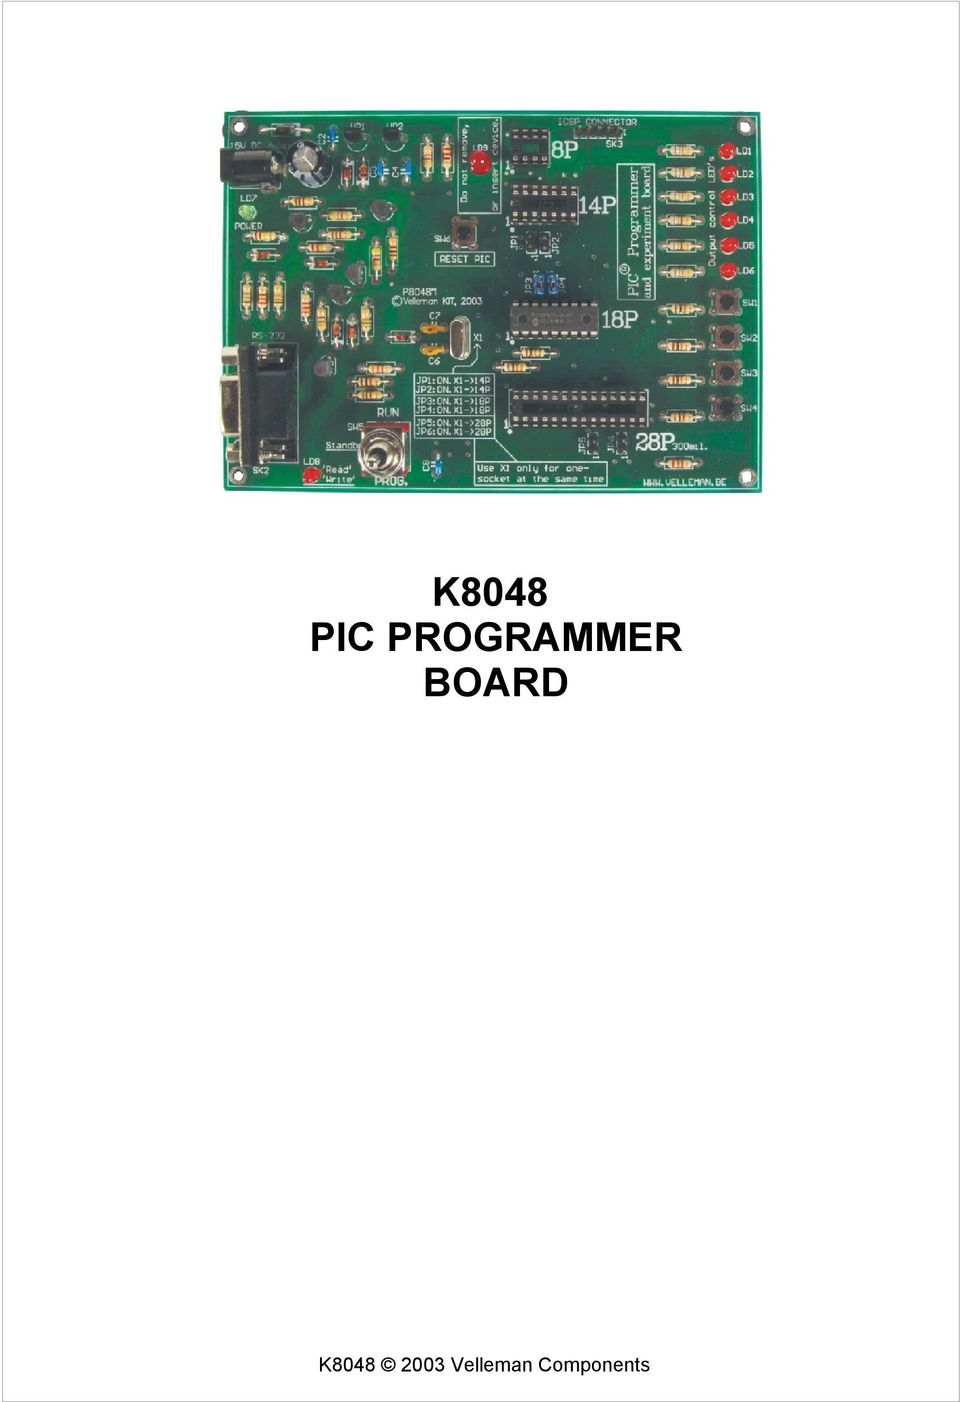 K8048 Pic Programmer Board Pdf Circuits Icsp In Circuit Serial Programming Based On Pic16f84 1